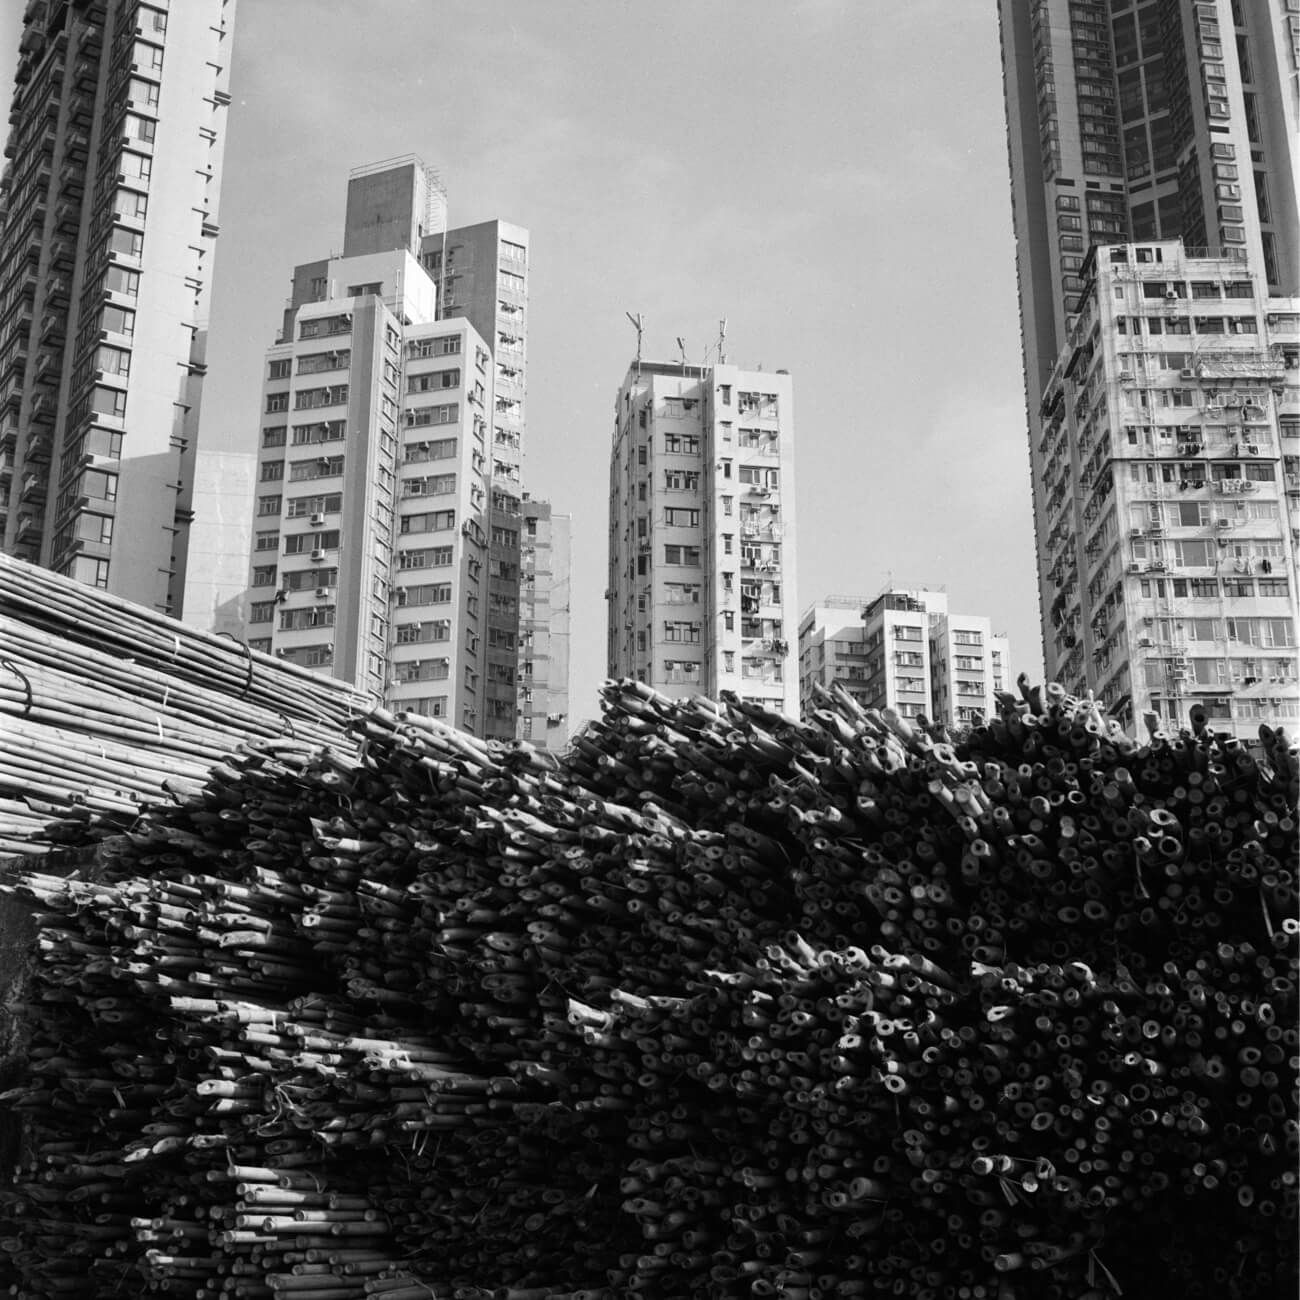 Analog-film-review-kodak-tri-x-trix-400-tahusa-bw-black-white-negative-instagram-pier-hong-kong-hk-rolleiflex-2.8F